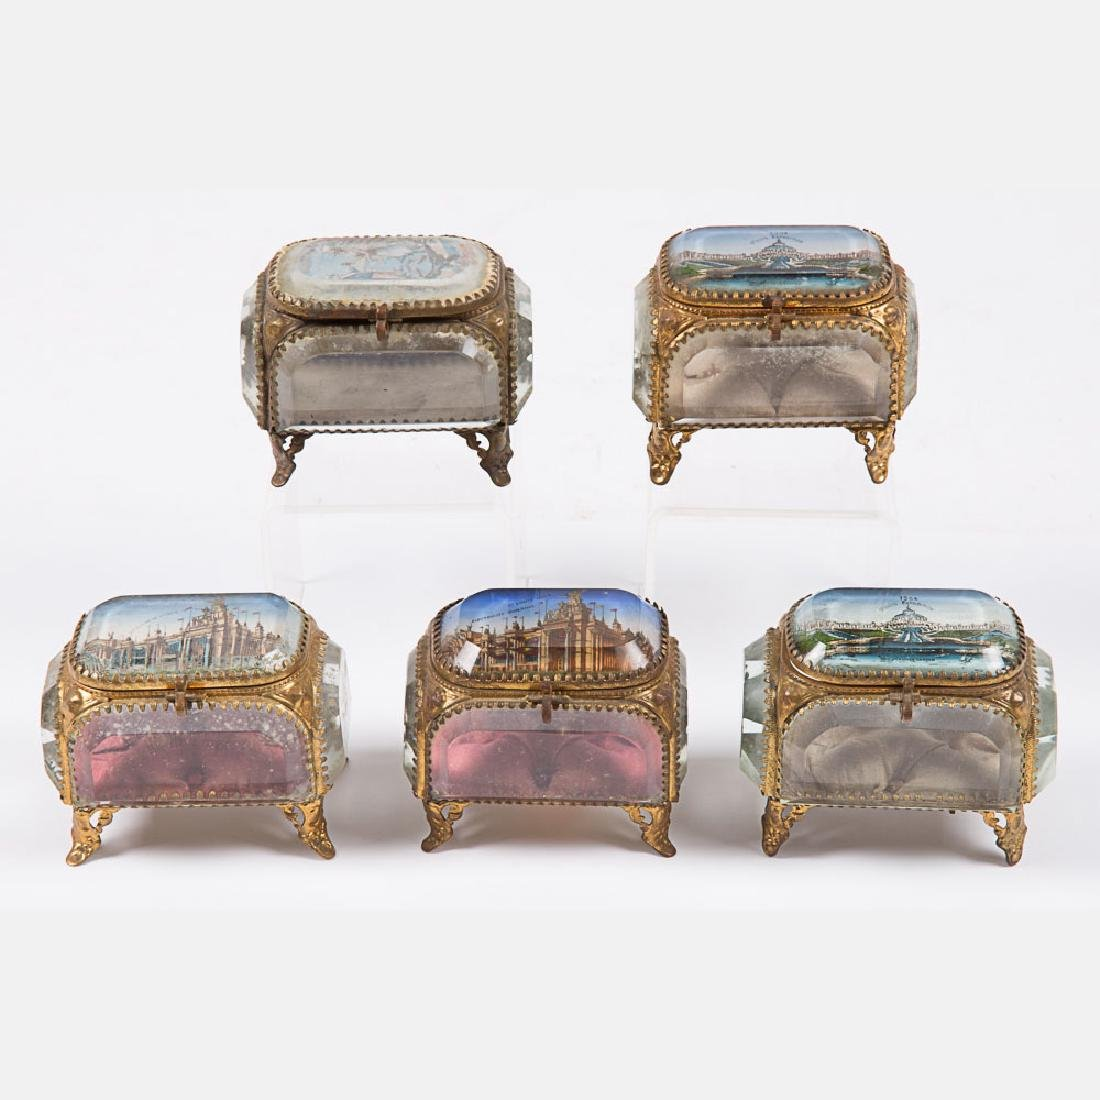 A Group of Five Glass and Brass Jewelry Boxes from the - 3